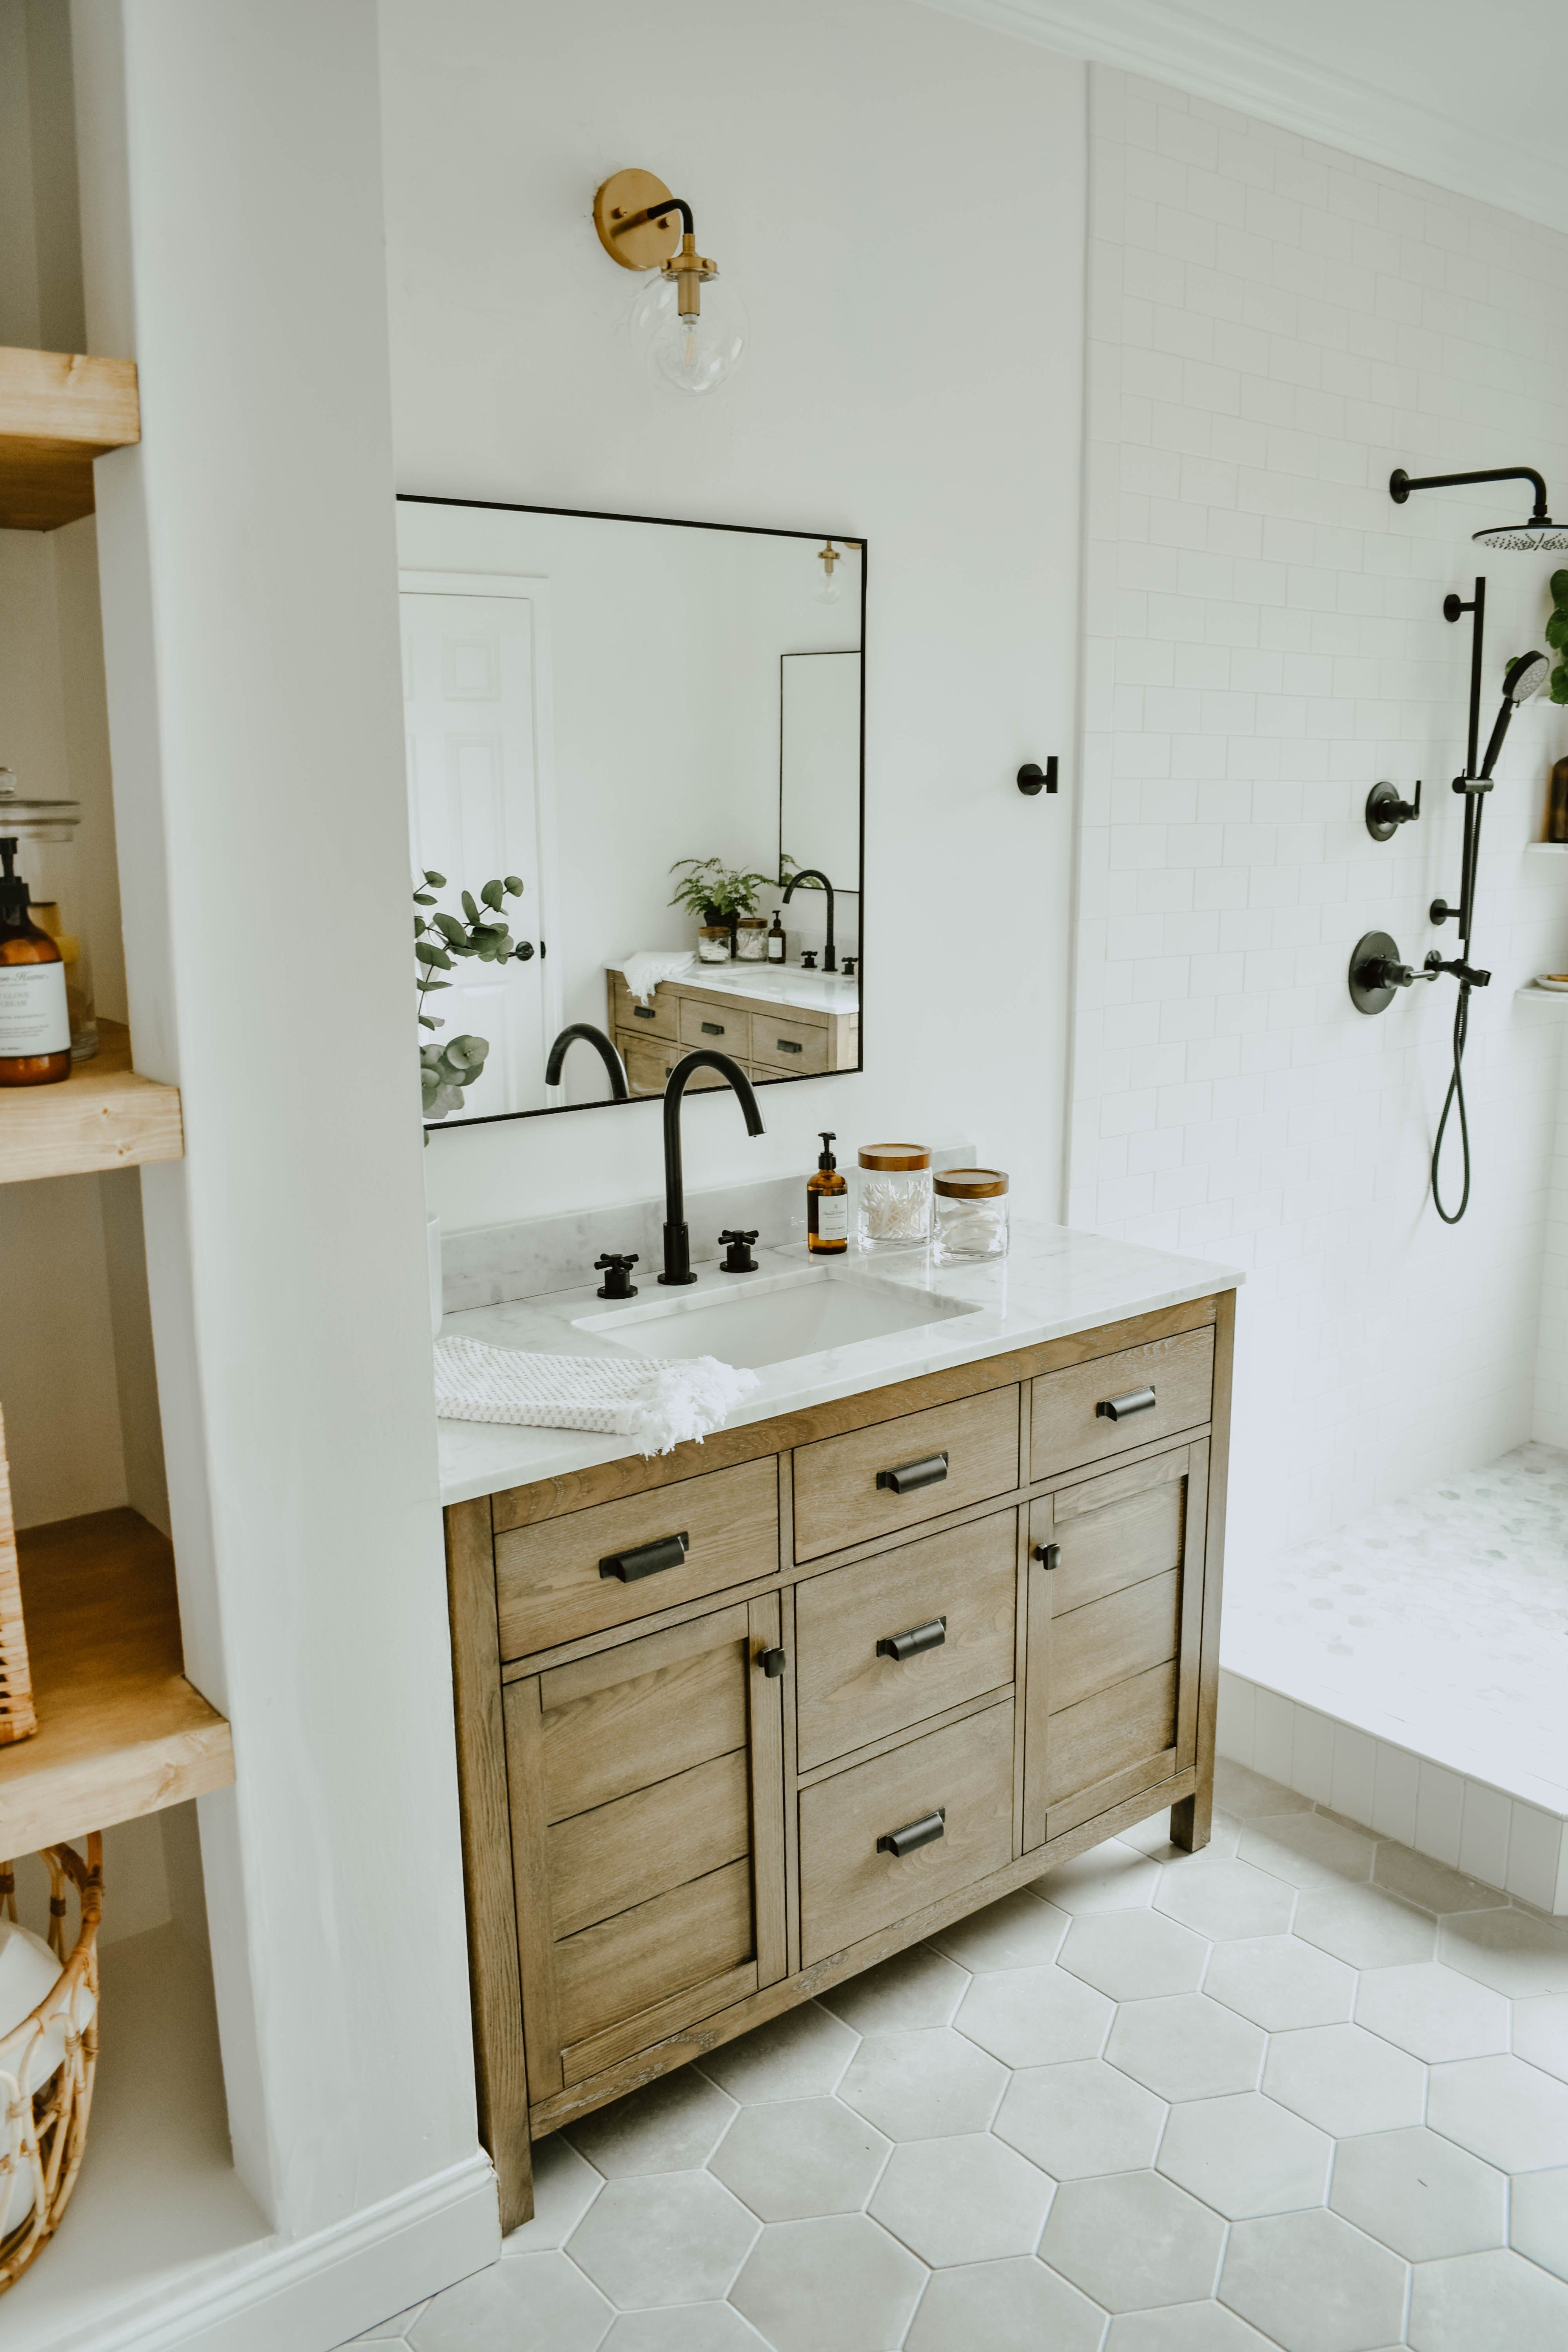 Modern Eclectic Bathroom Remodel White Subway Tile Bathroom Wooden Bathroom Vanity Eclectic Bathroom